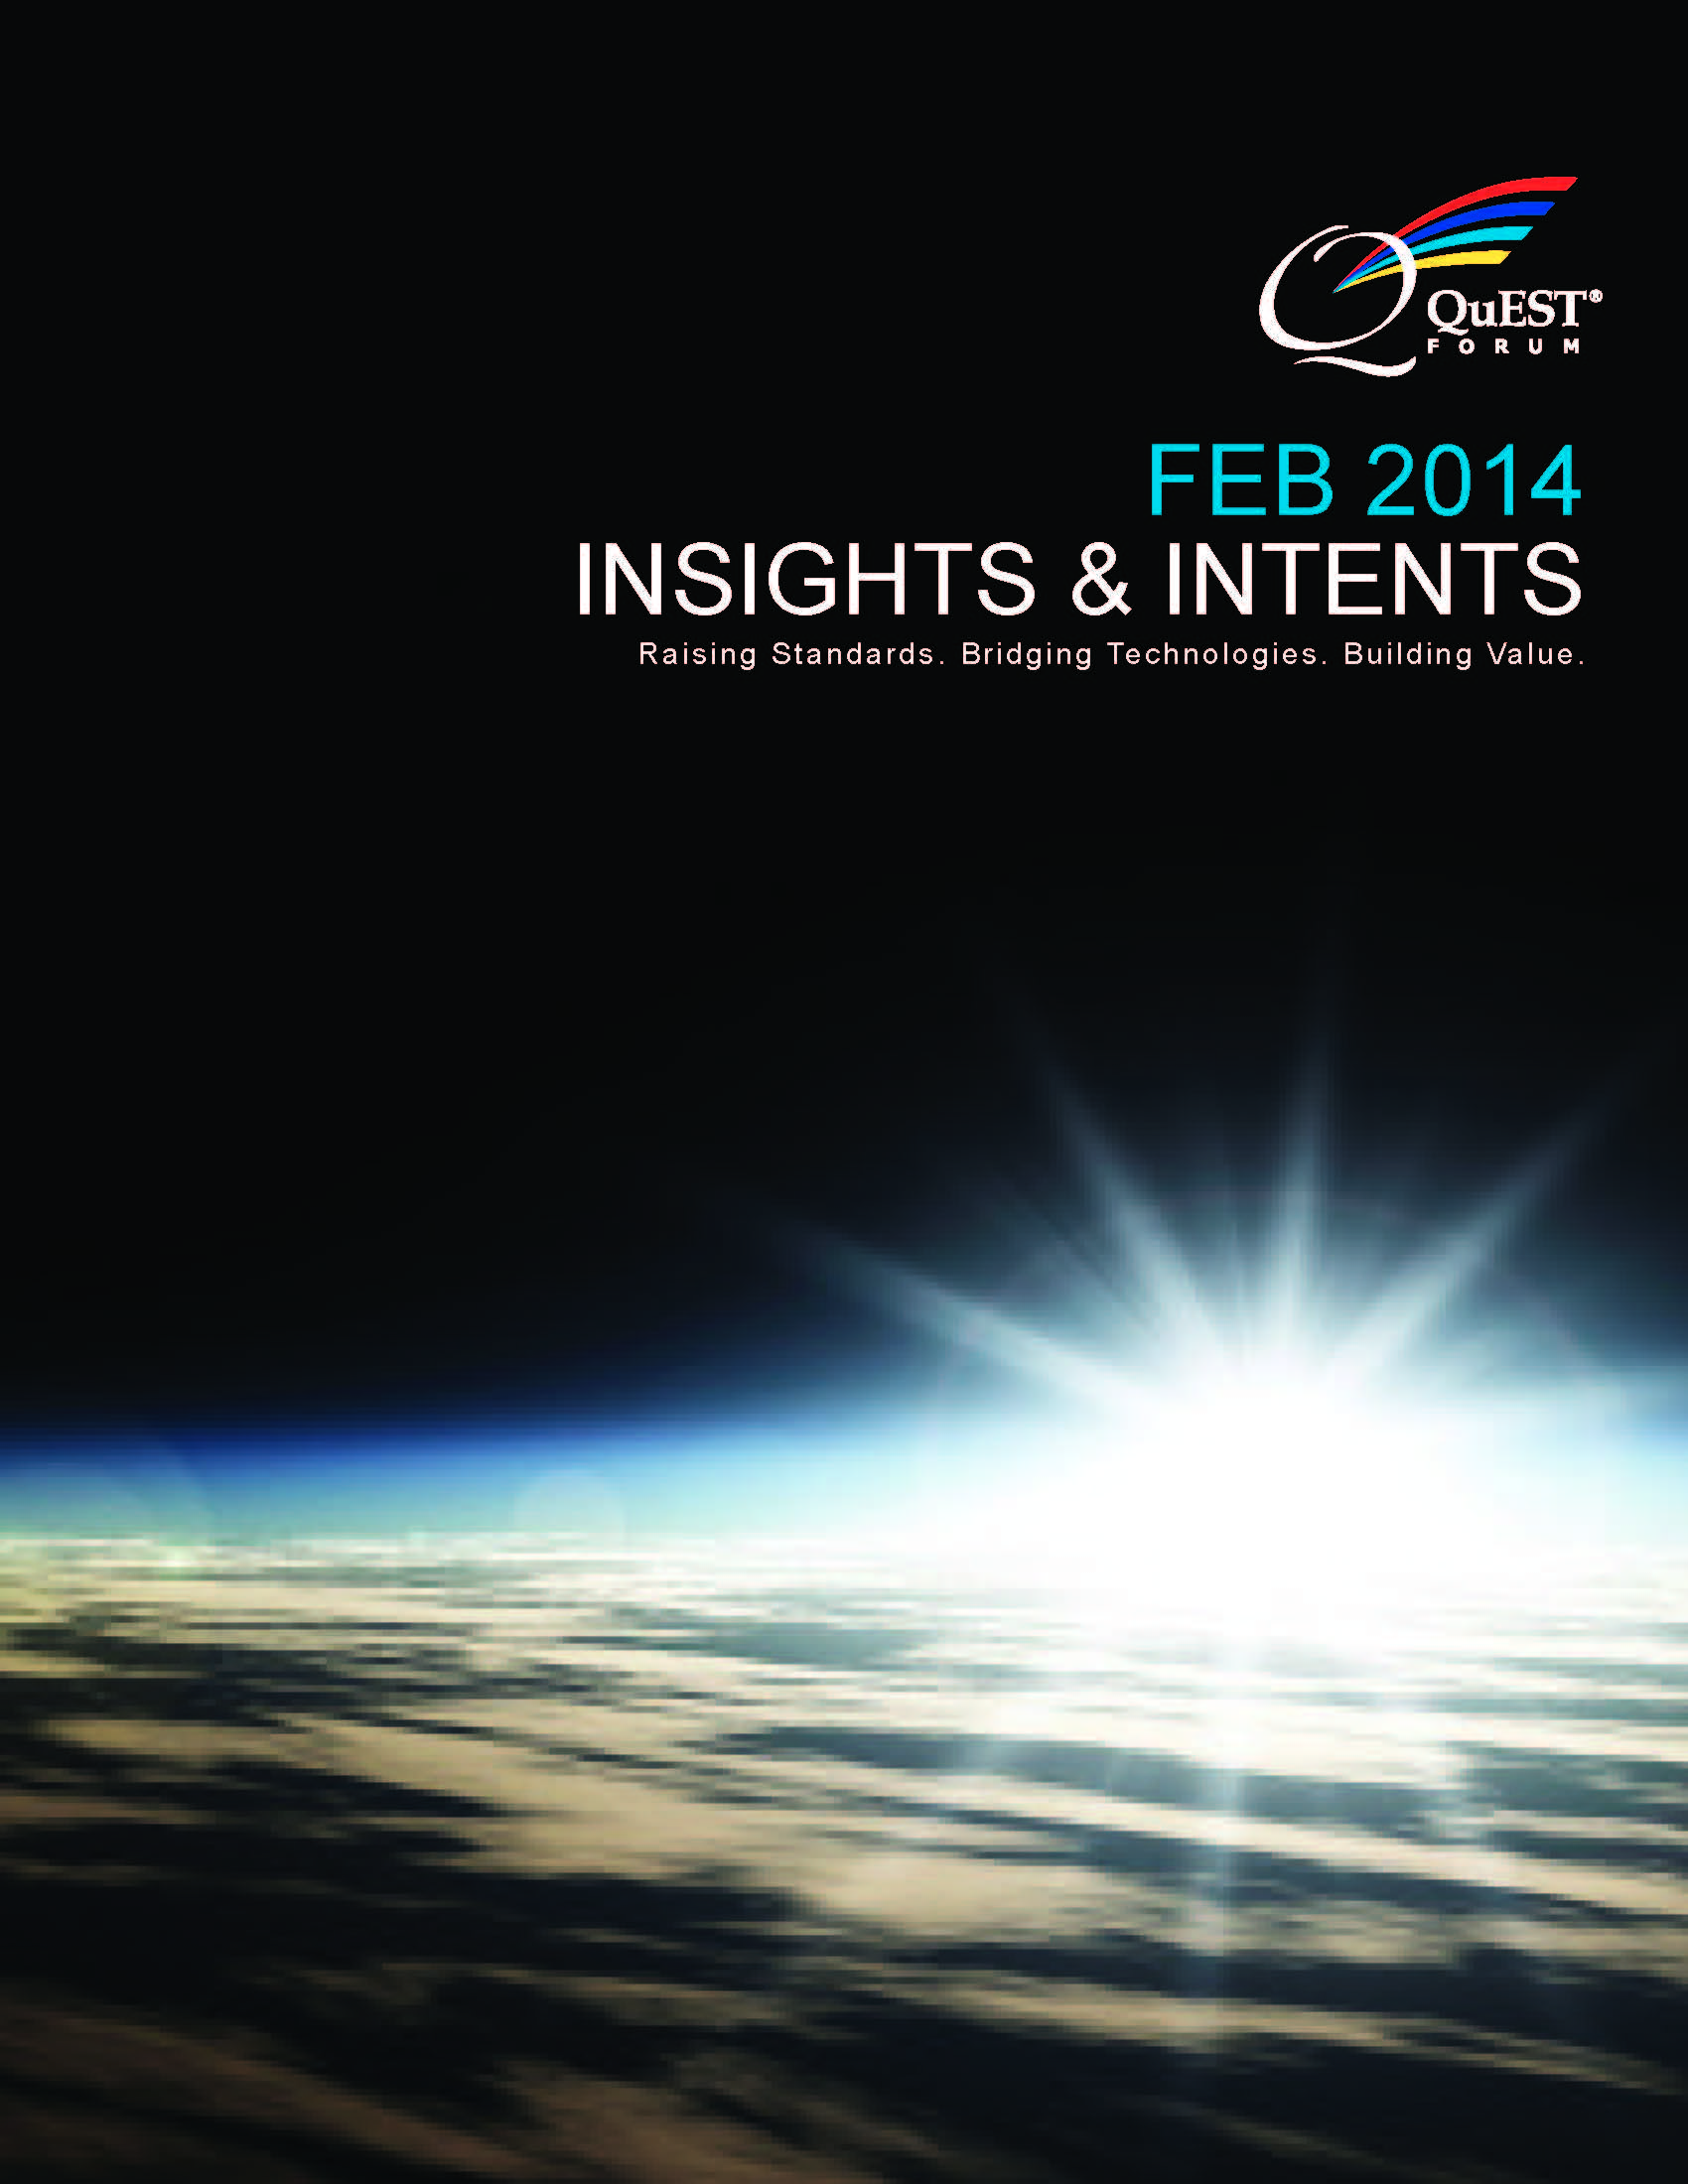 Quest Forum Insights & Intents 2014